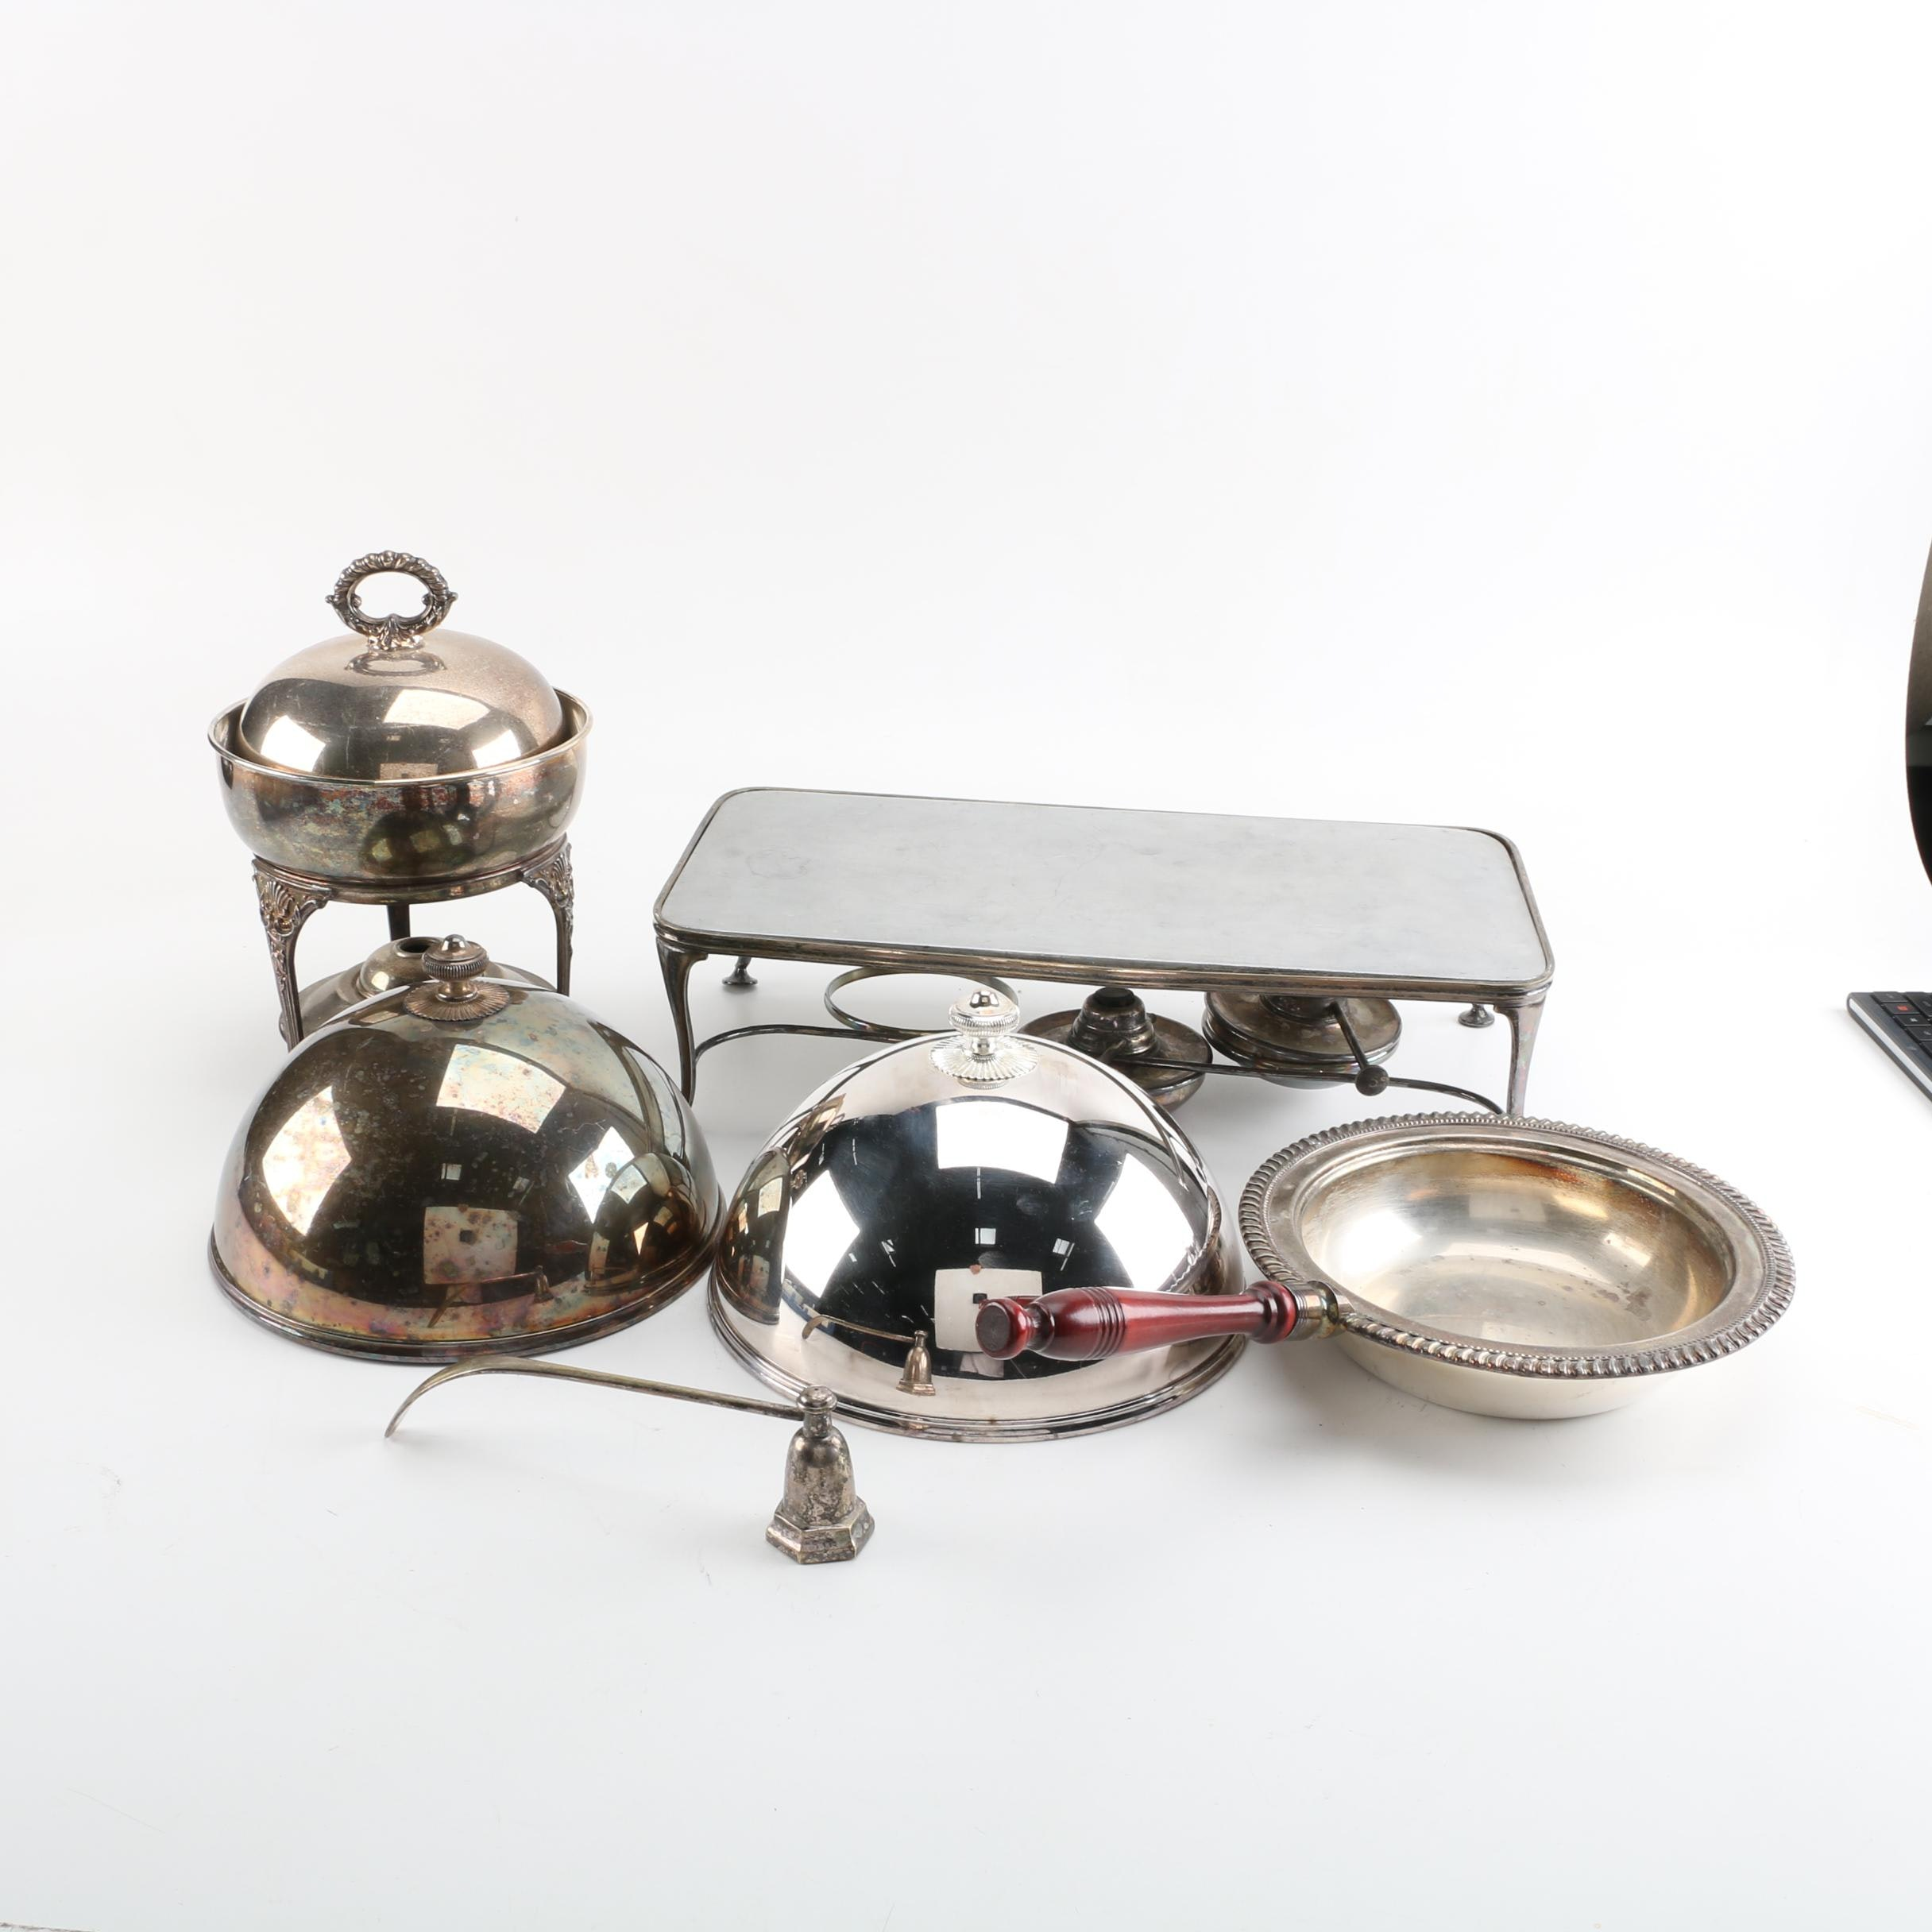 Hukin & Heath Chafing Dish Stand and Other Silver Plate Serveware